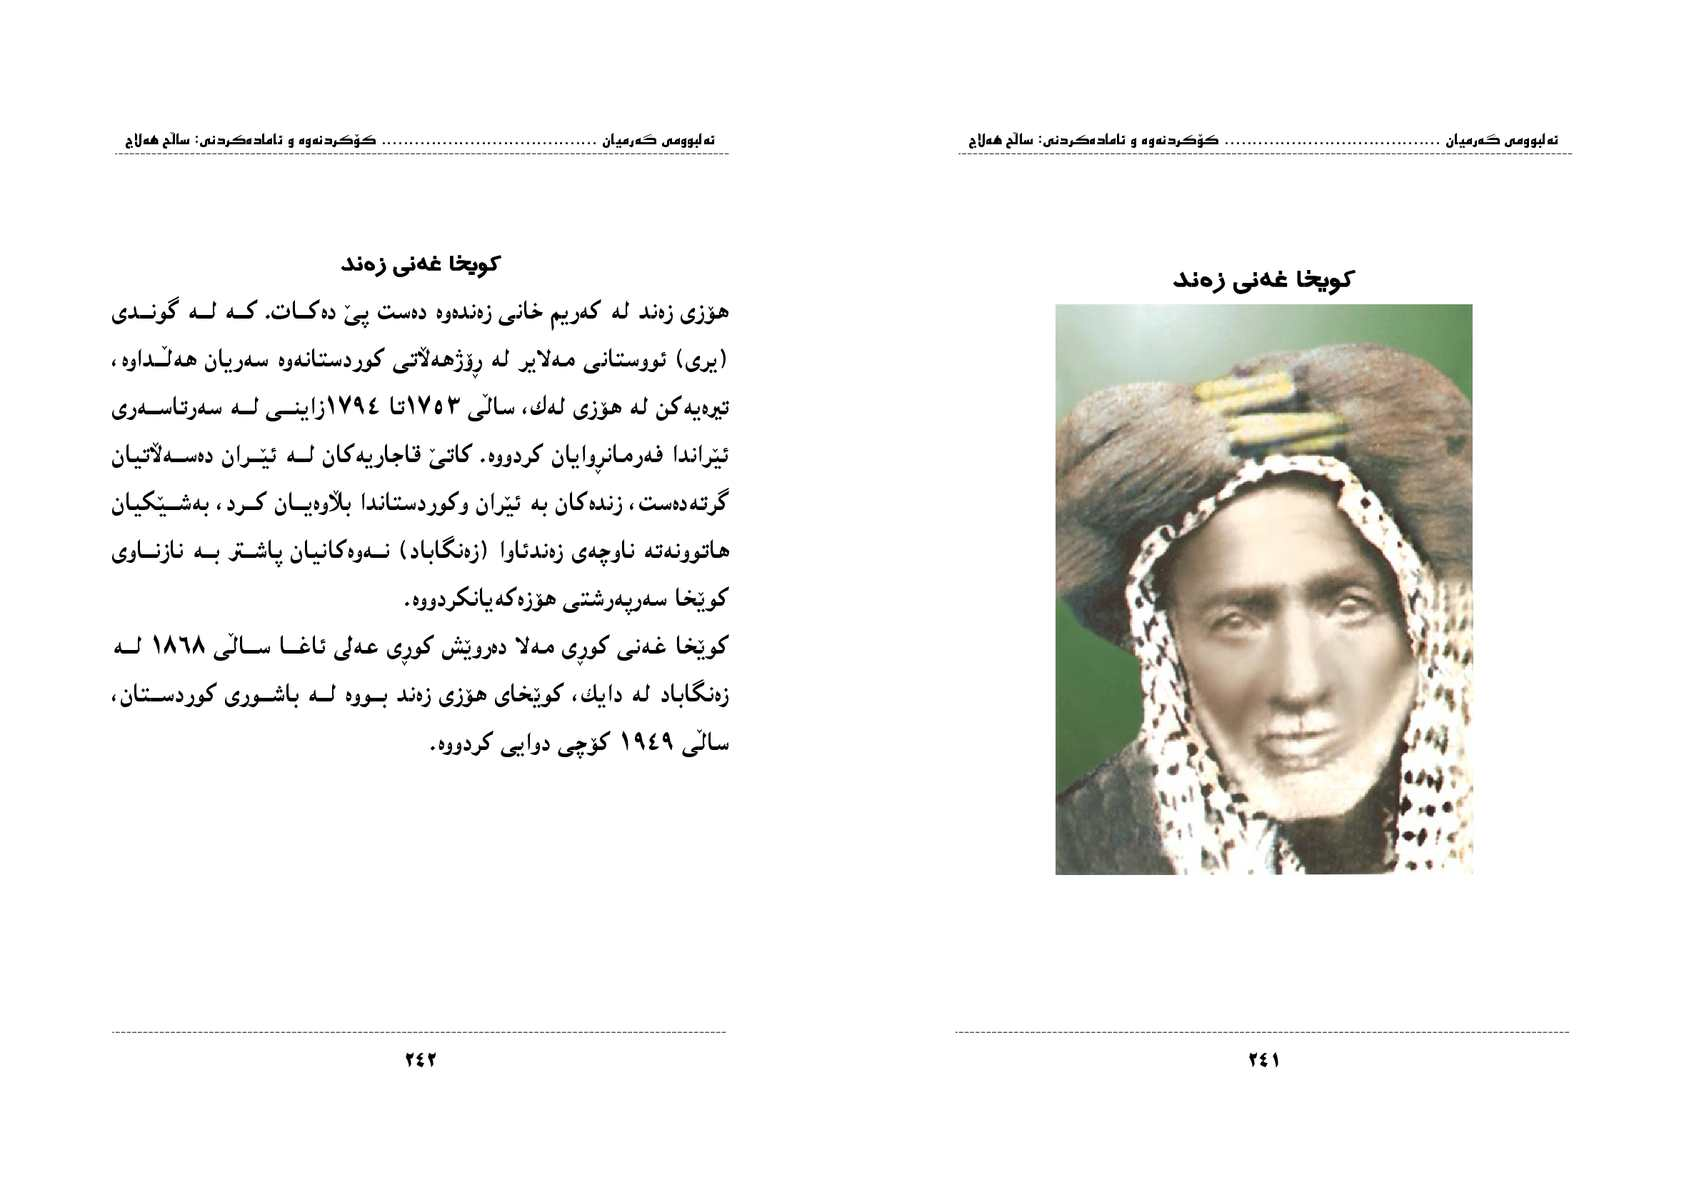 Page 121